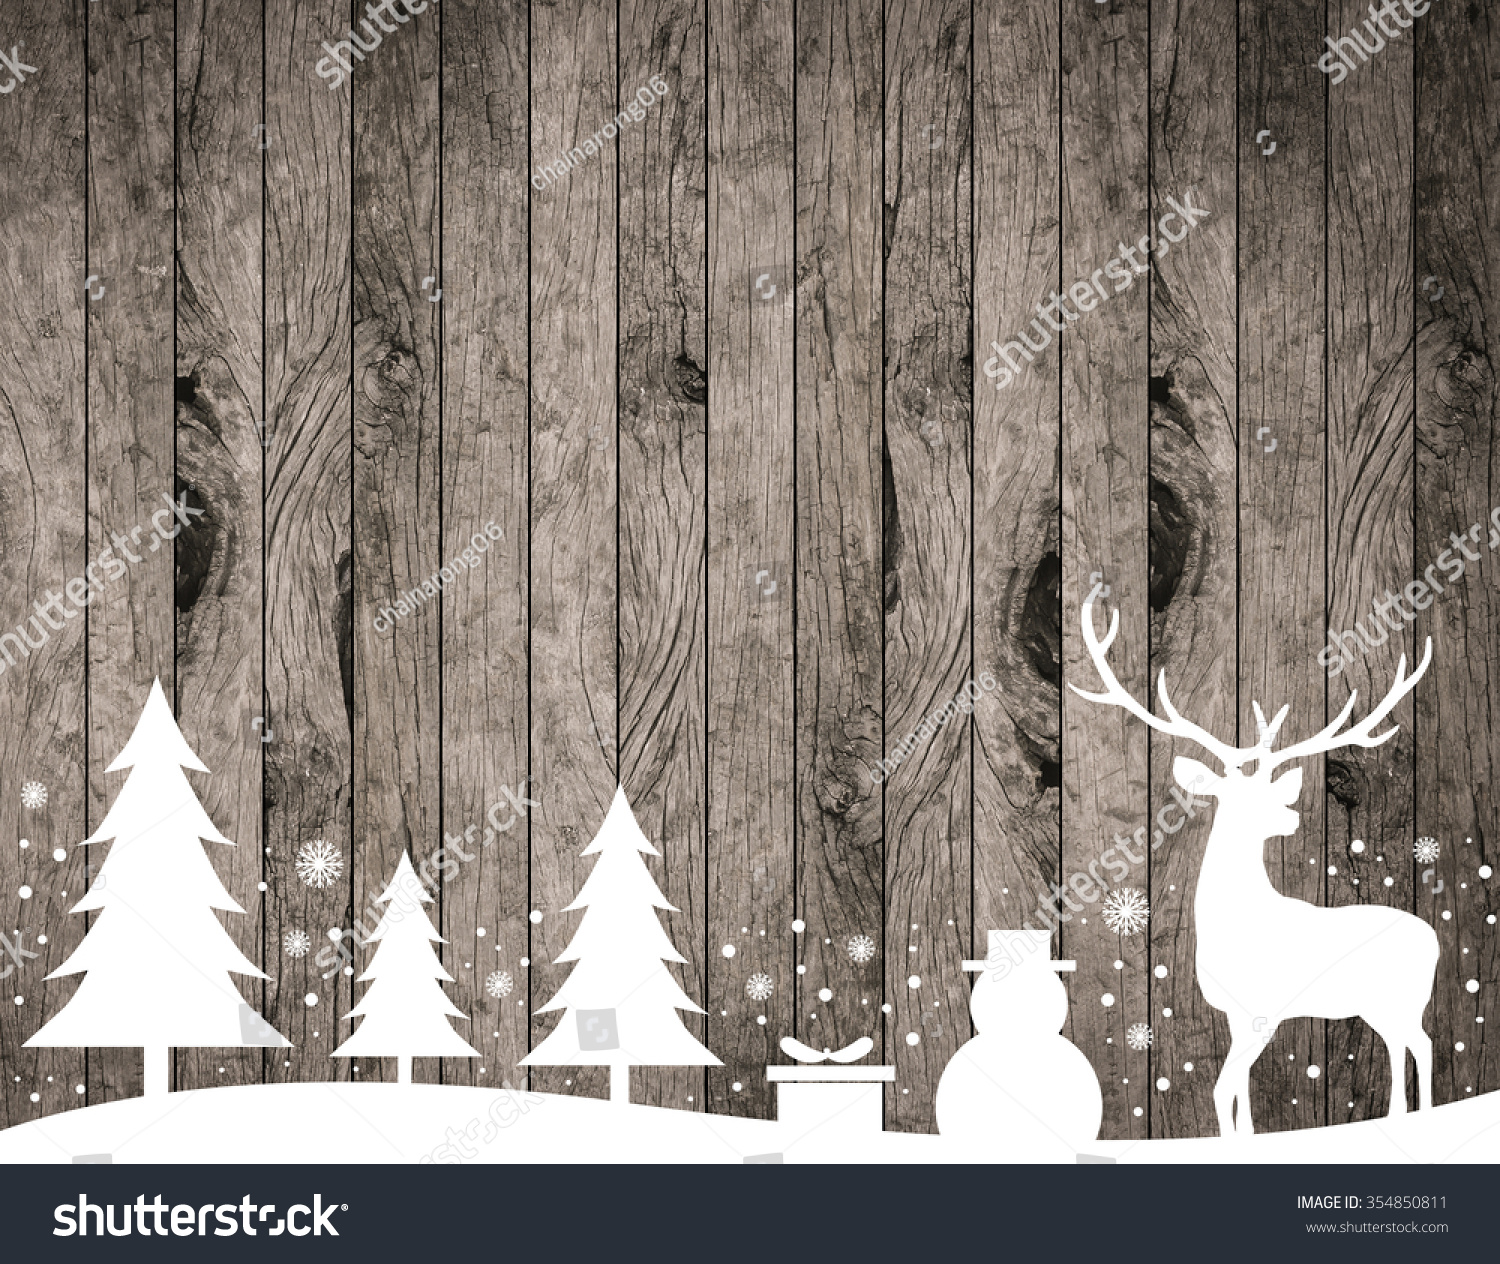 Silhouette White Reindeertreesnowmansnowflakegift On Rustic Wood Stripe Panels Vertical Background For Decorate Merry Christmas Festive And New Year